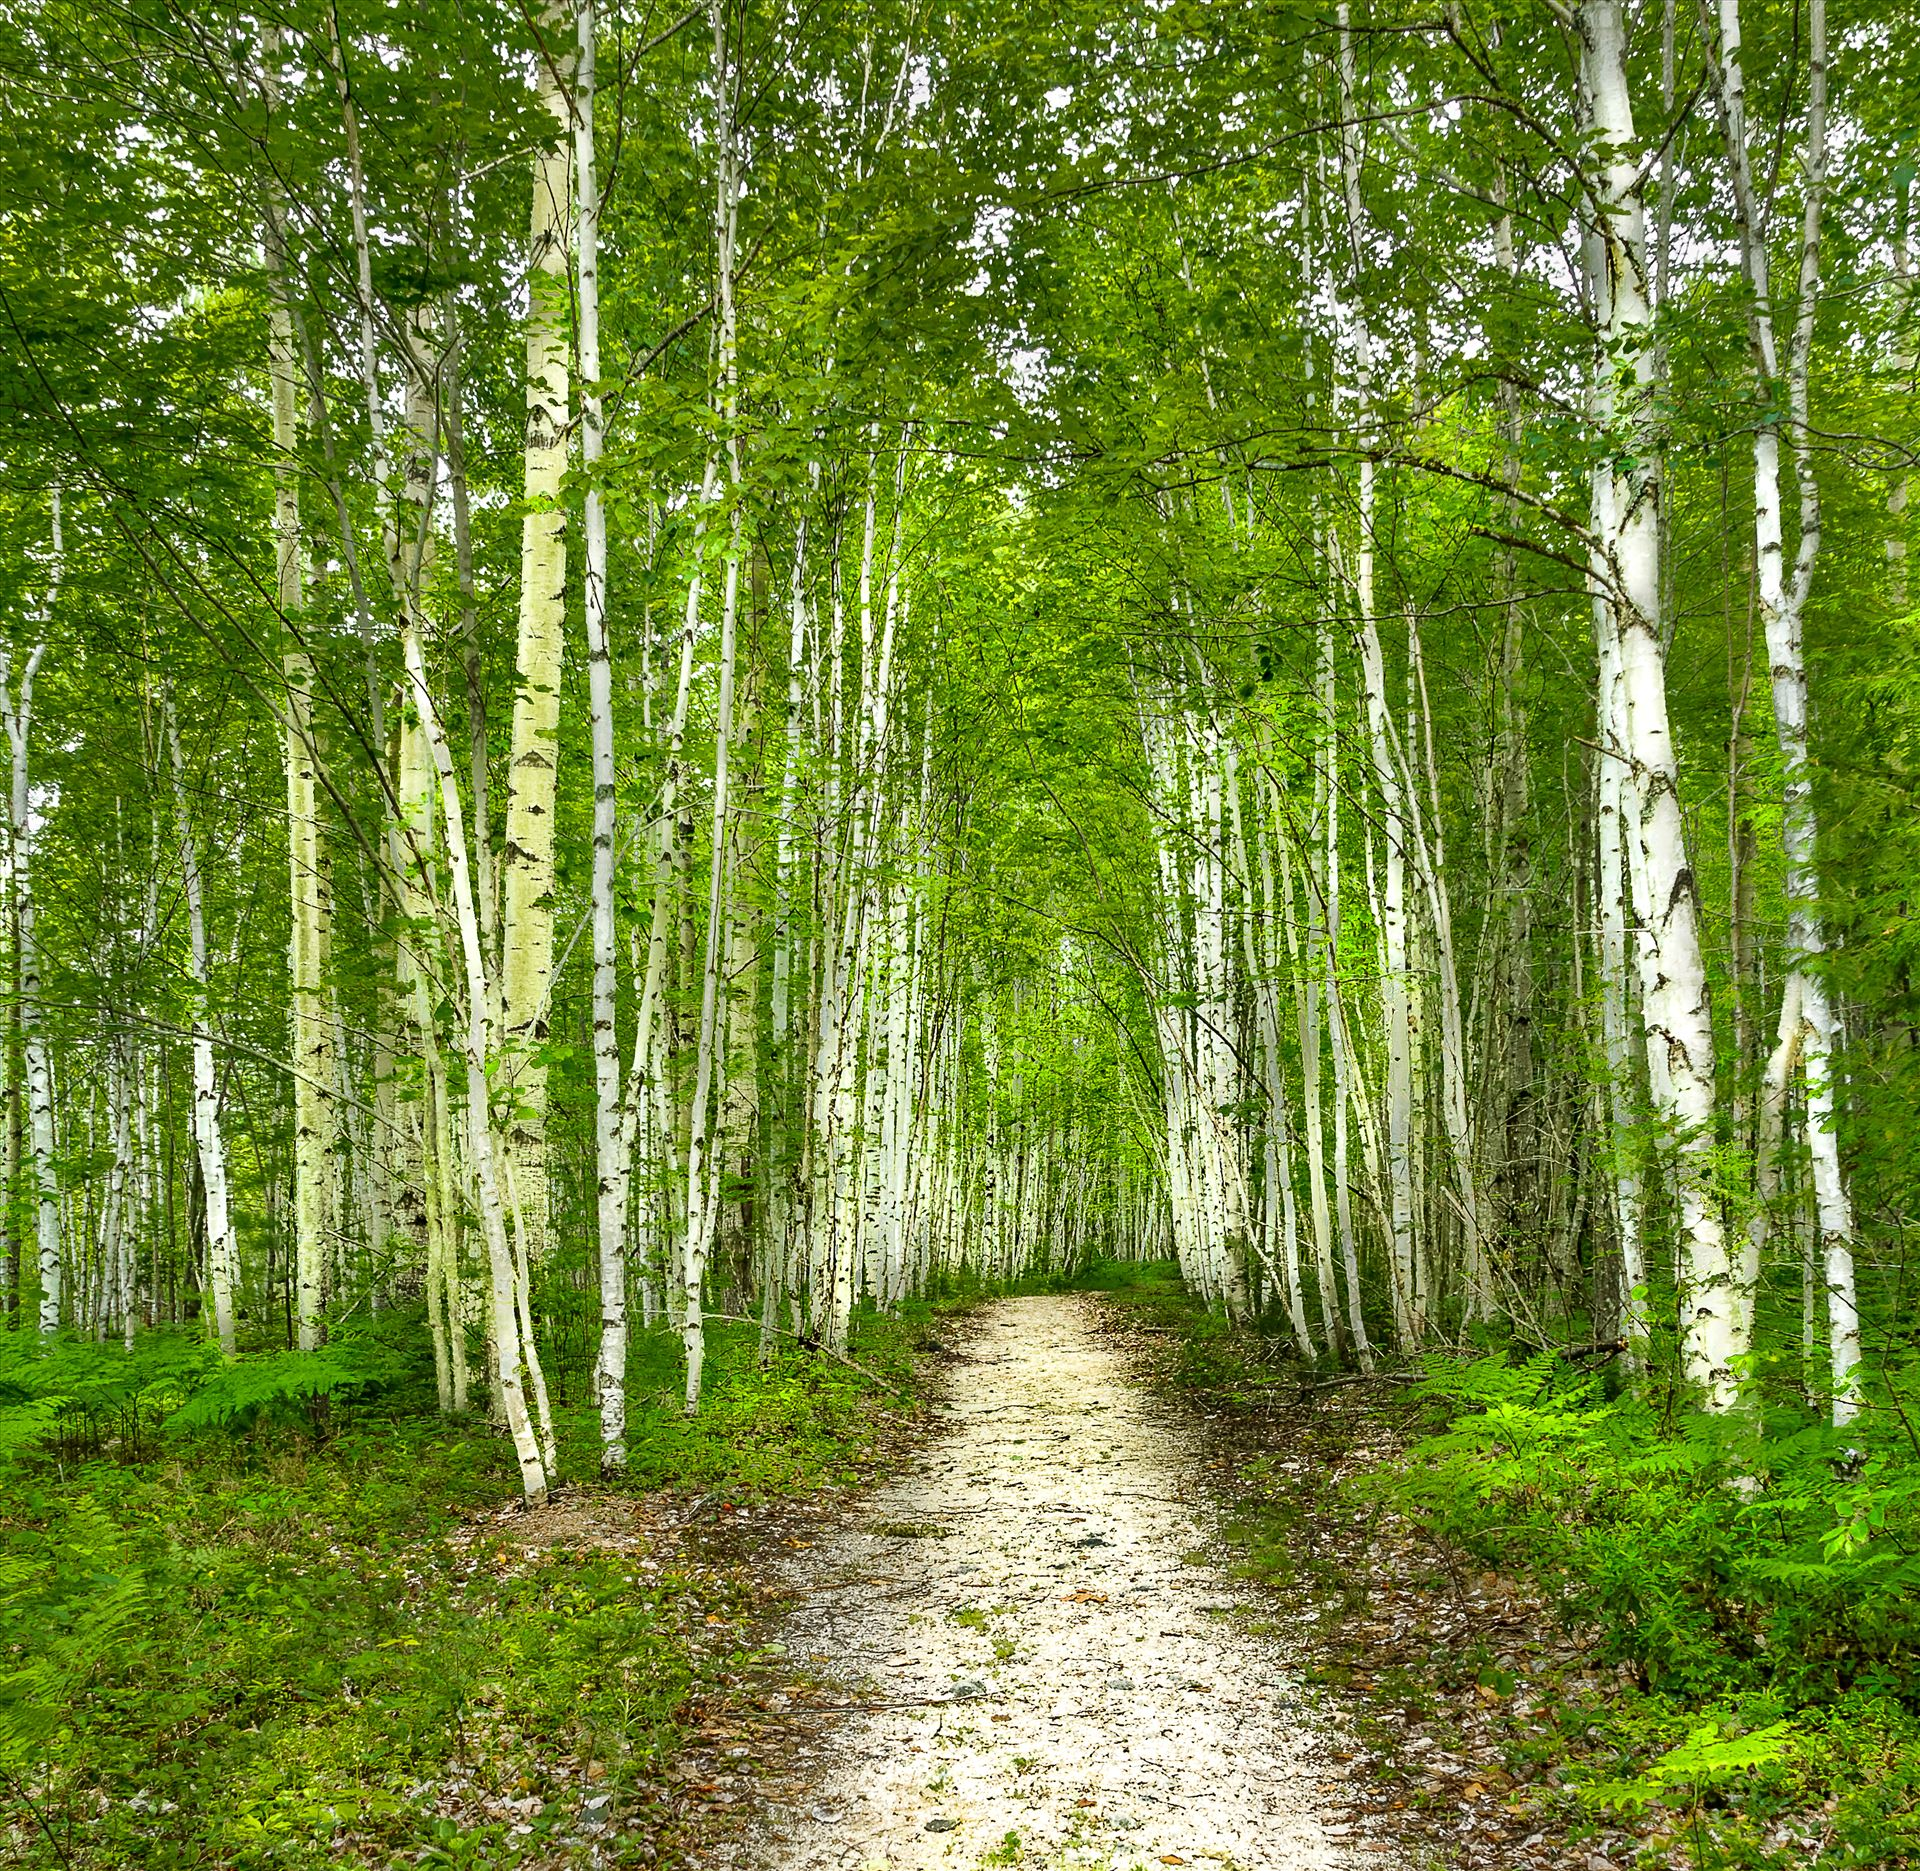 Birch Trees - Trail to Blueberry Ledges in Baxter State Park, Maine by Buckmaster